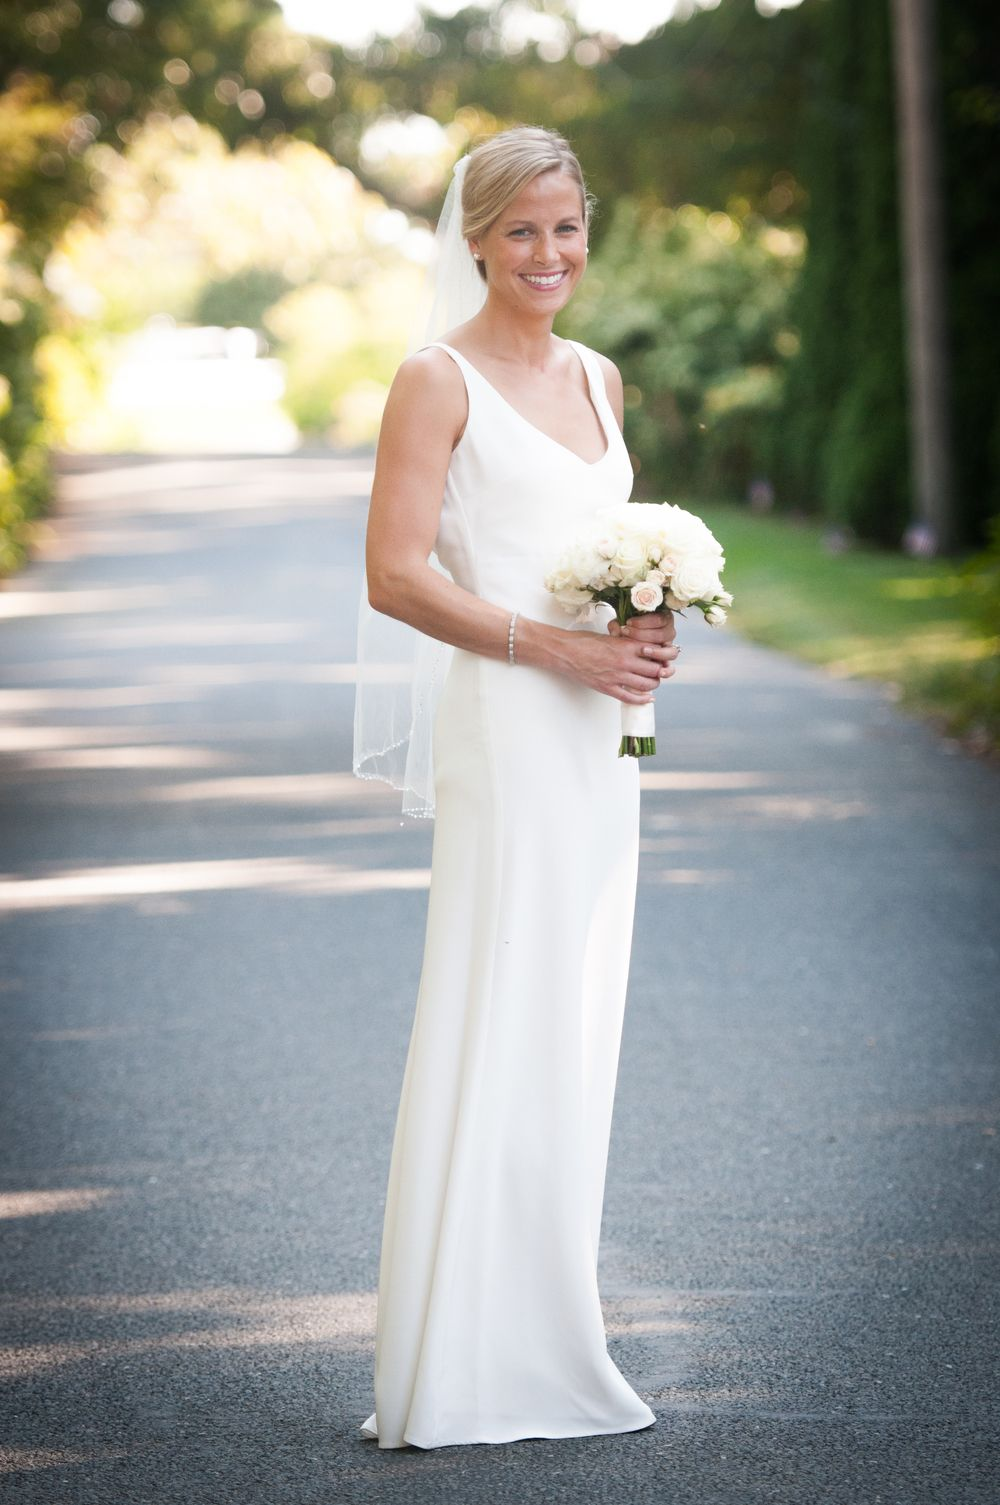 Kate Was Married On Cape Cod And Wanted A Simple Yet Elegant